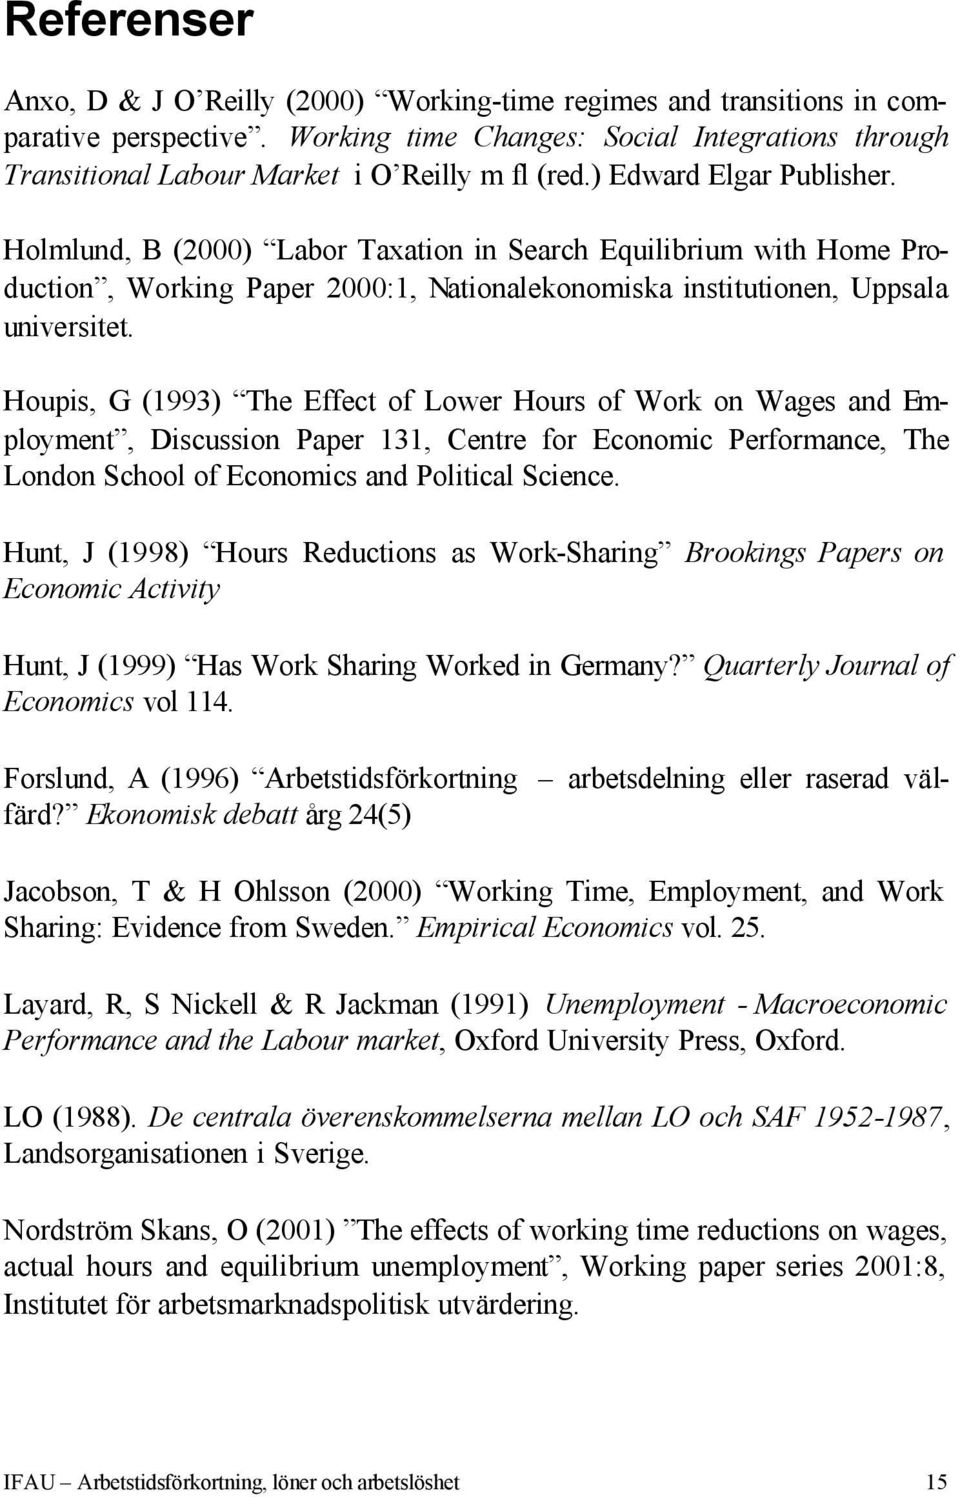 Holmlund, B (2000) Labor Taxation in Search Equilibrium with Home Production, Working Paper 2000:1, Nationalekonomiska institutionen, Uppsala universitet.